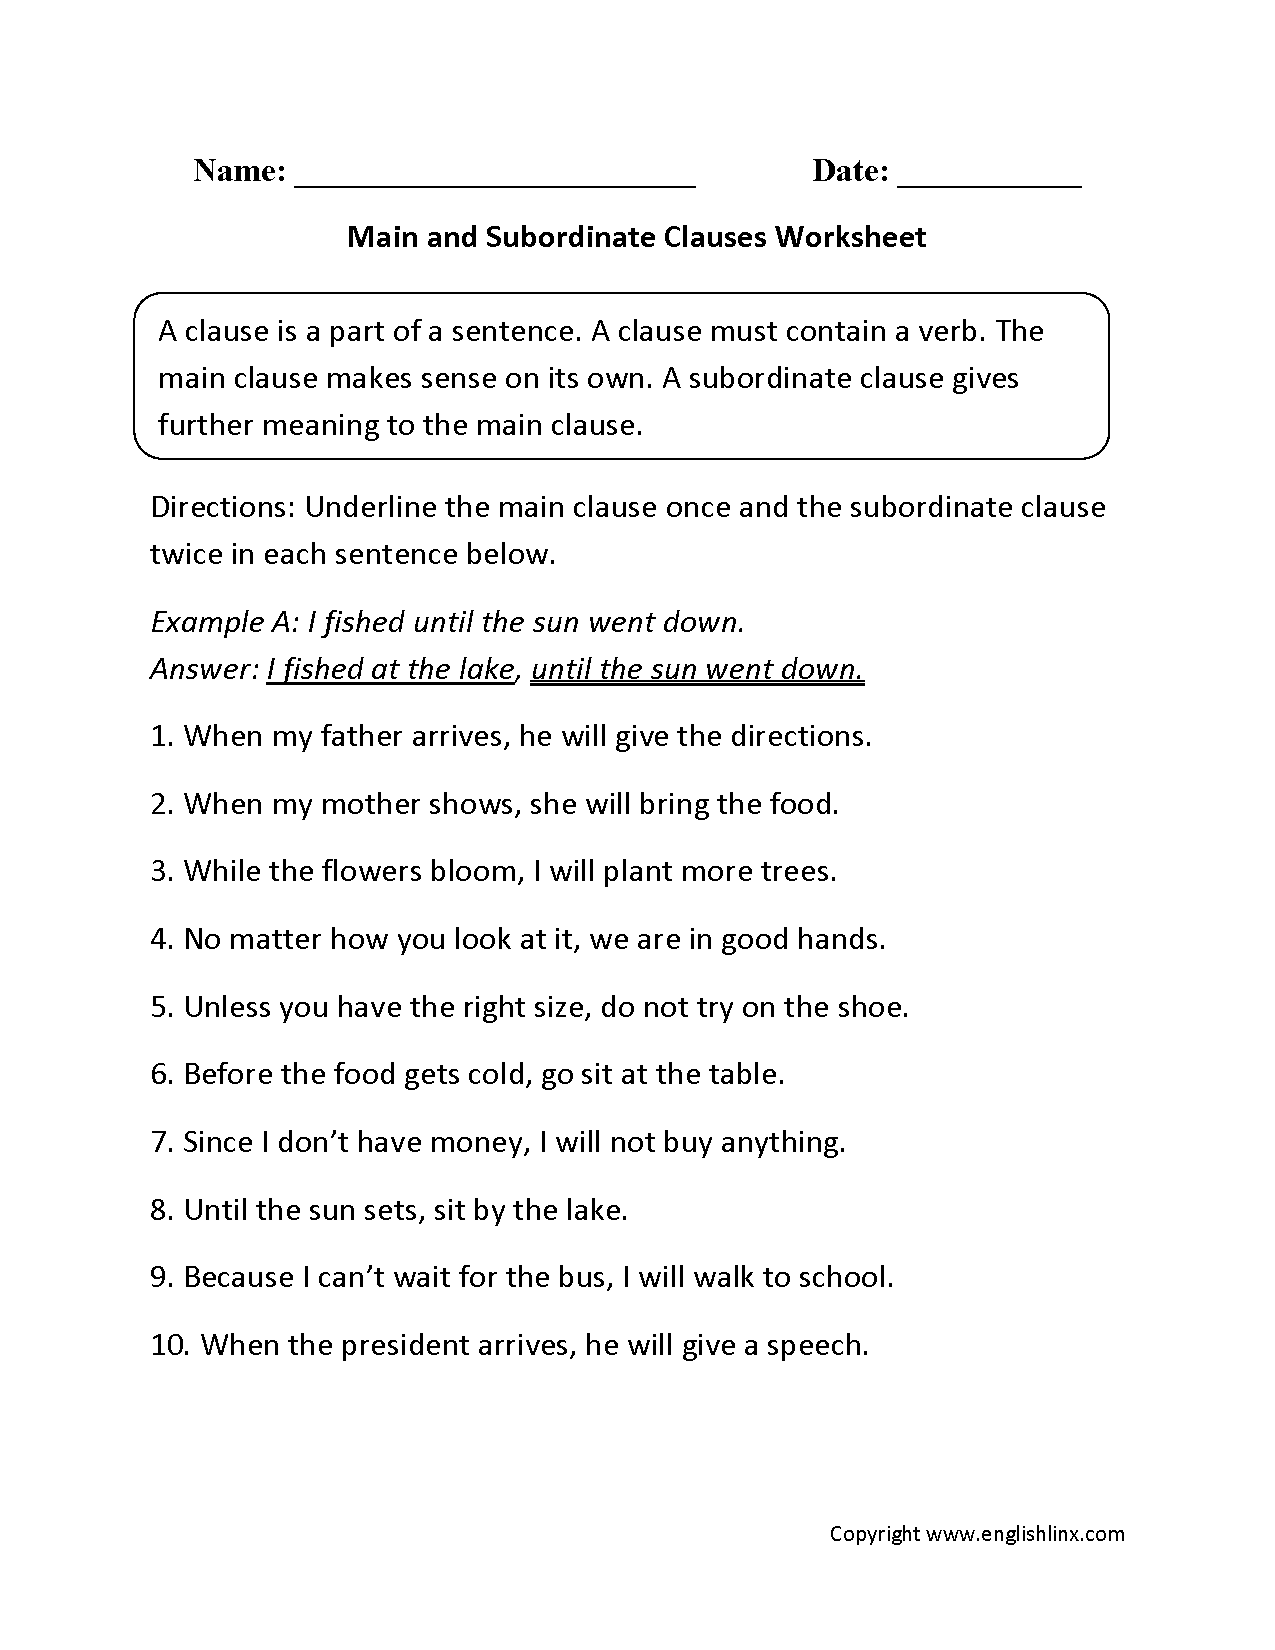 worksheet Clauses And Phrases Worksheets clauses worksheets main and subordinate worksheet worksheets